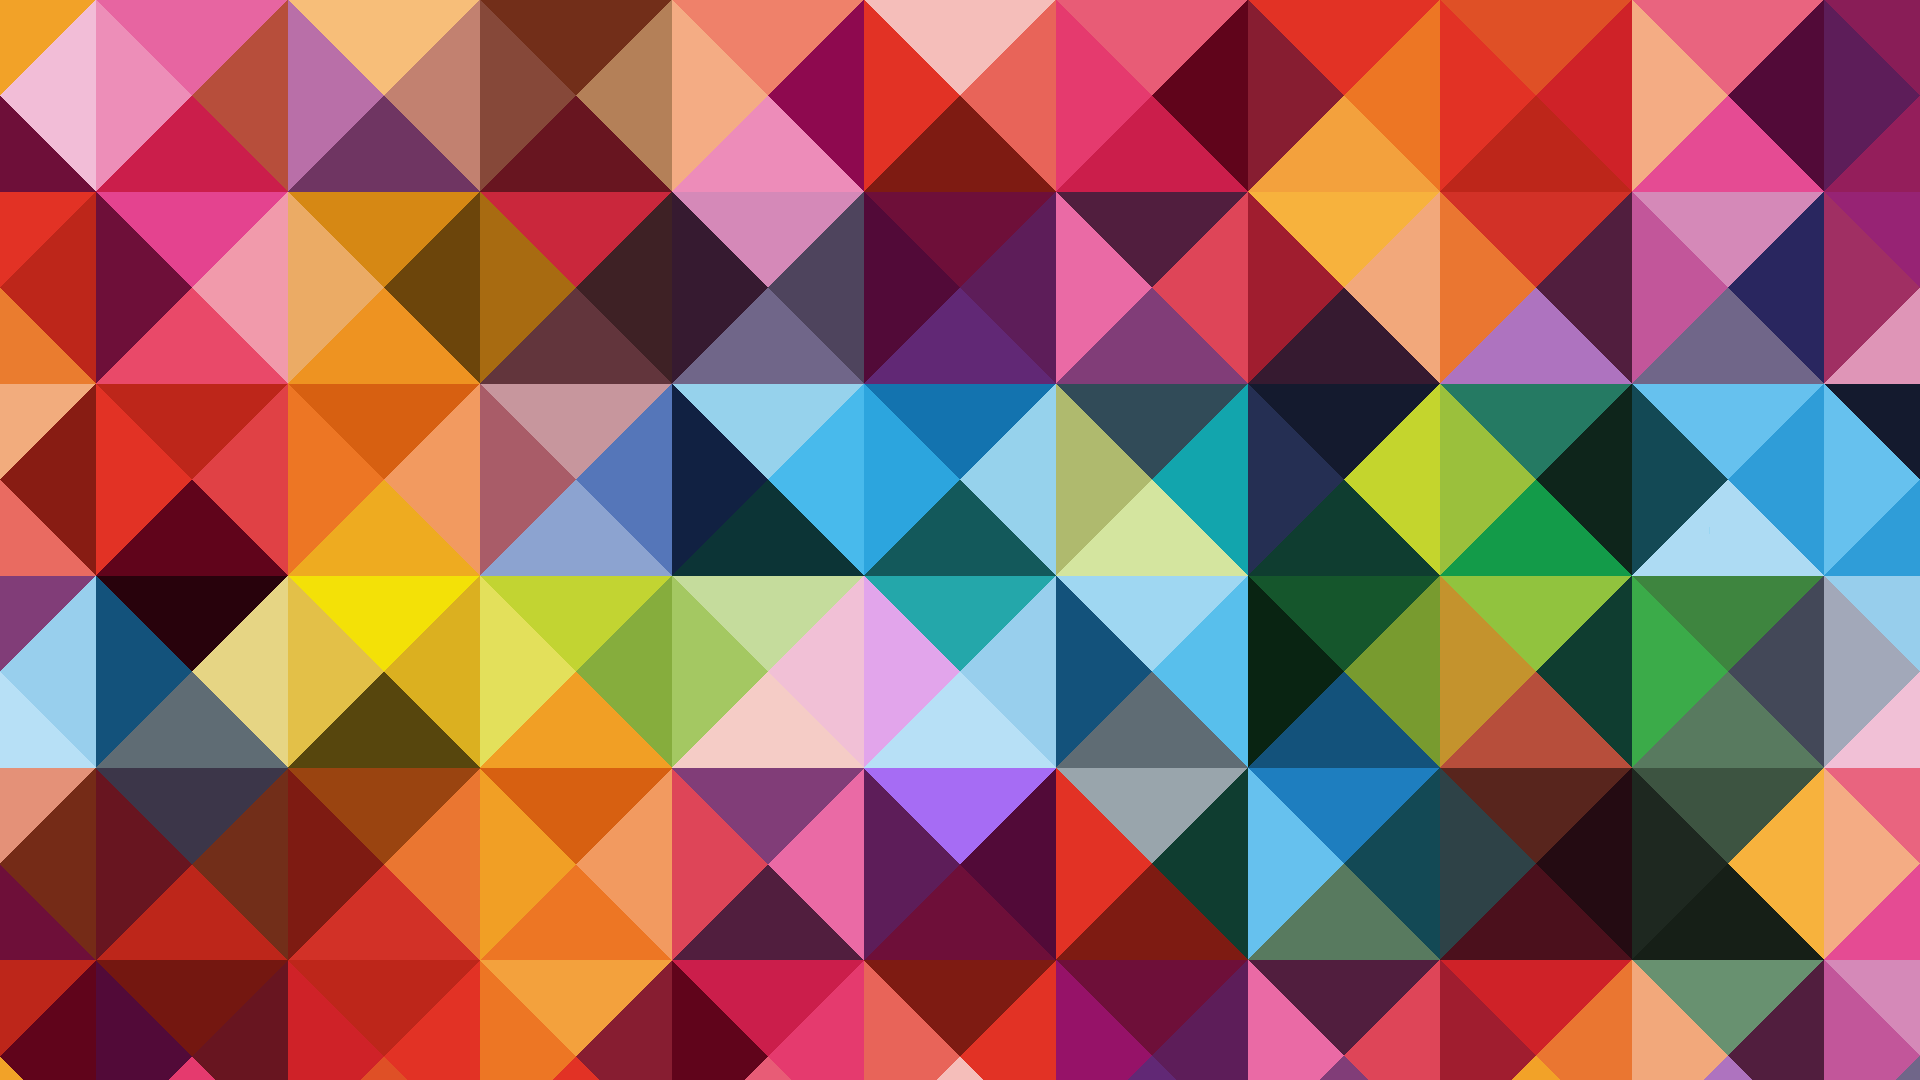 30 Moto X Inspired Wallpapers For Your Android